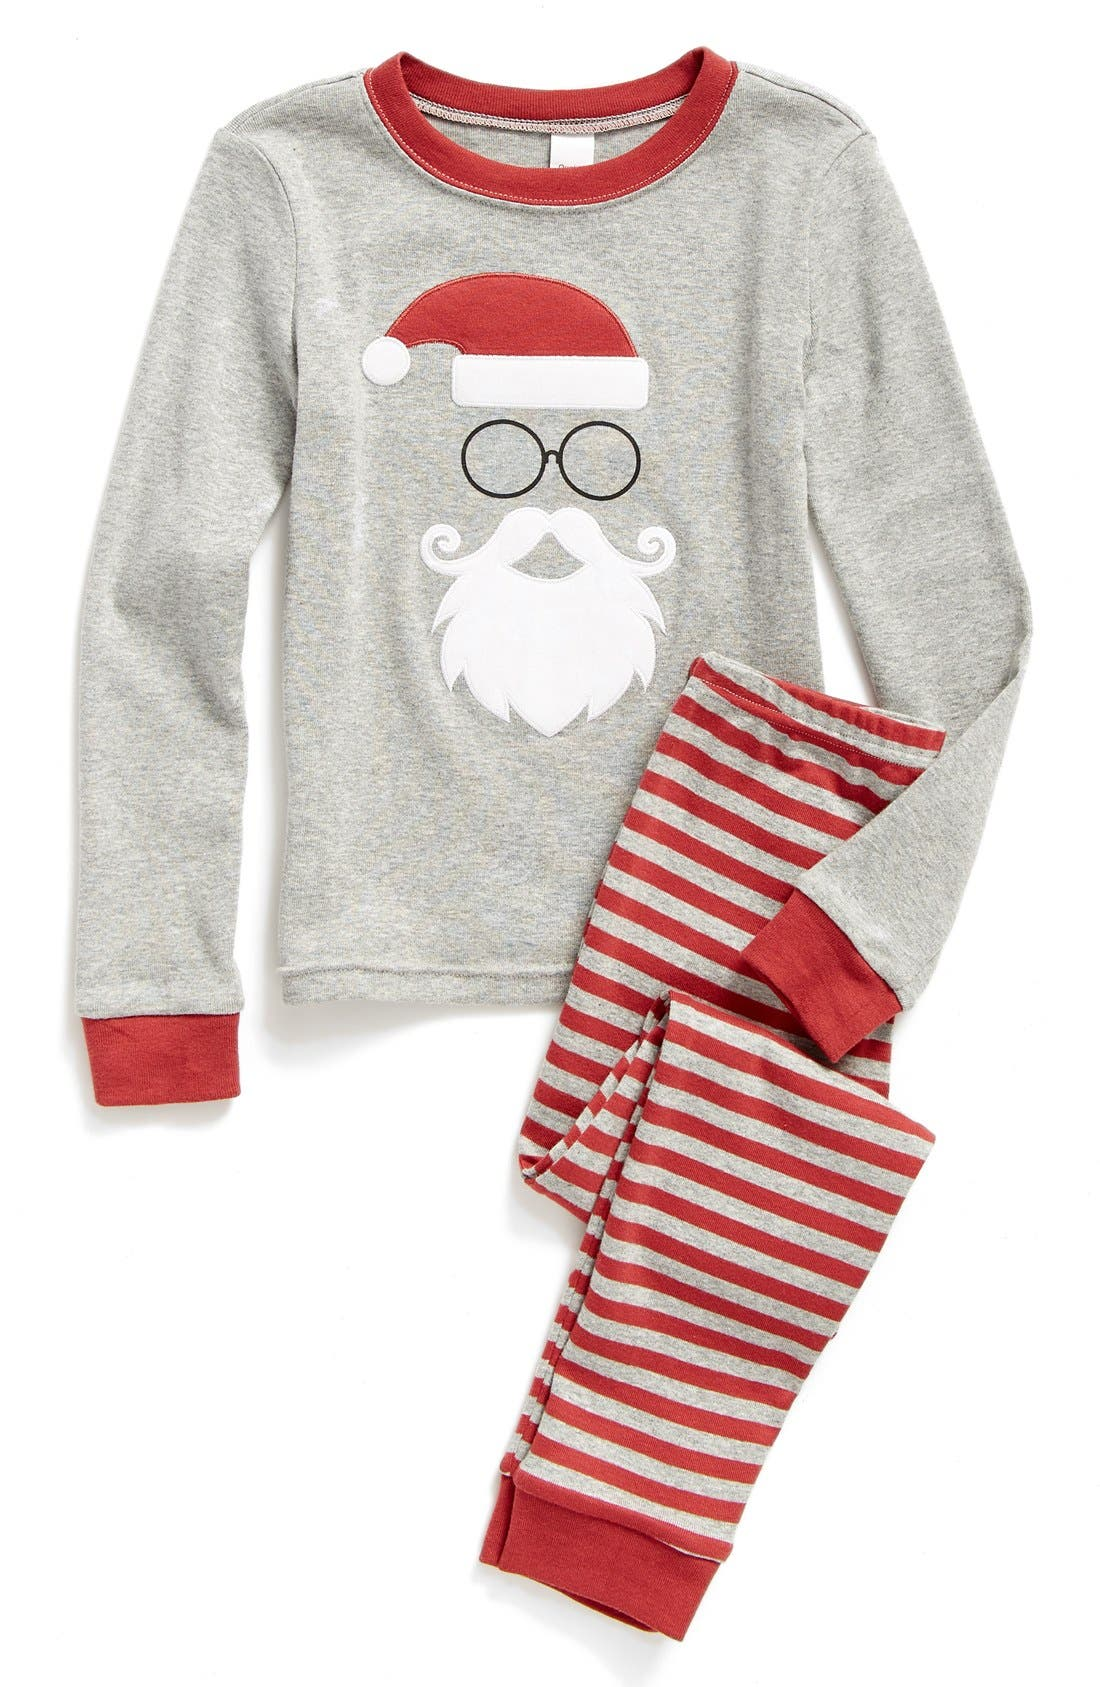 Main Image - Tucker + Tate Fitted Two-Piece Pajamas (Toddler, Little Kids & Big Kids)